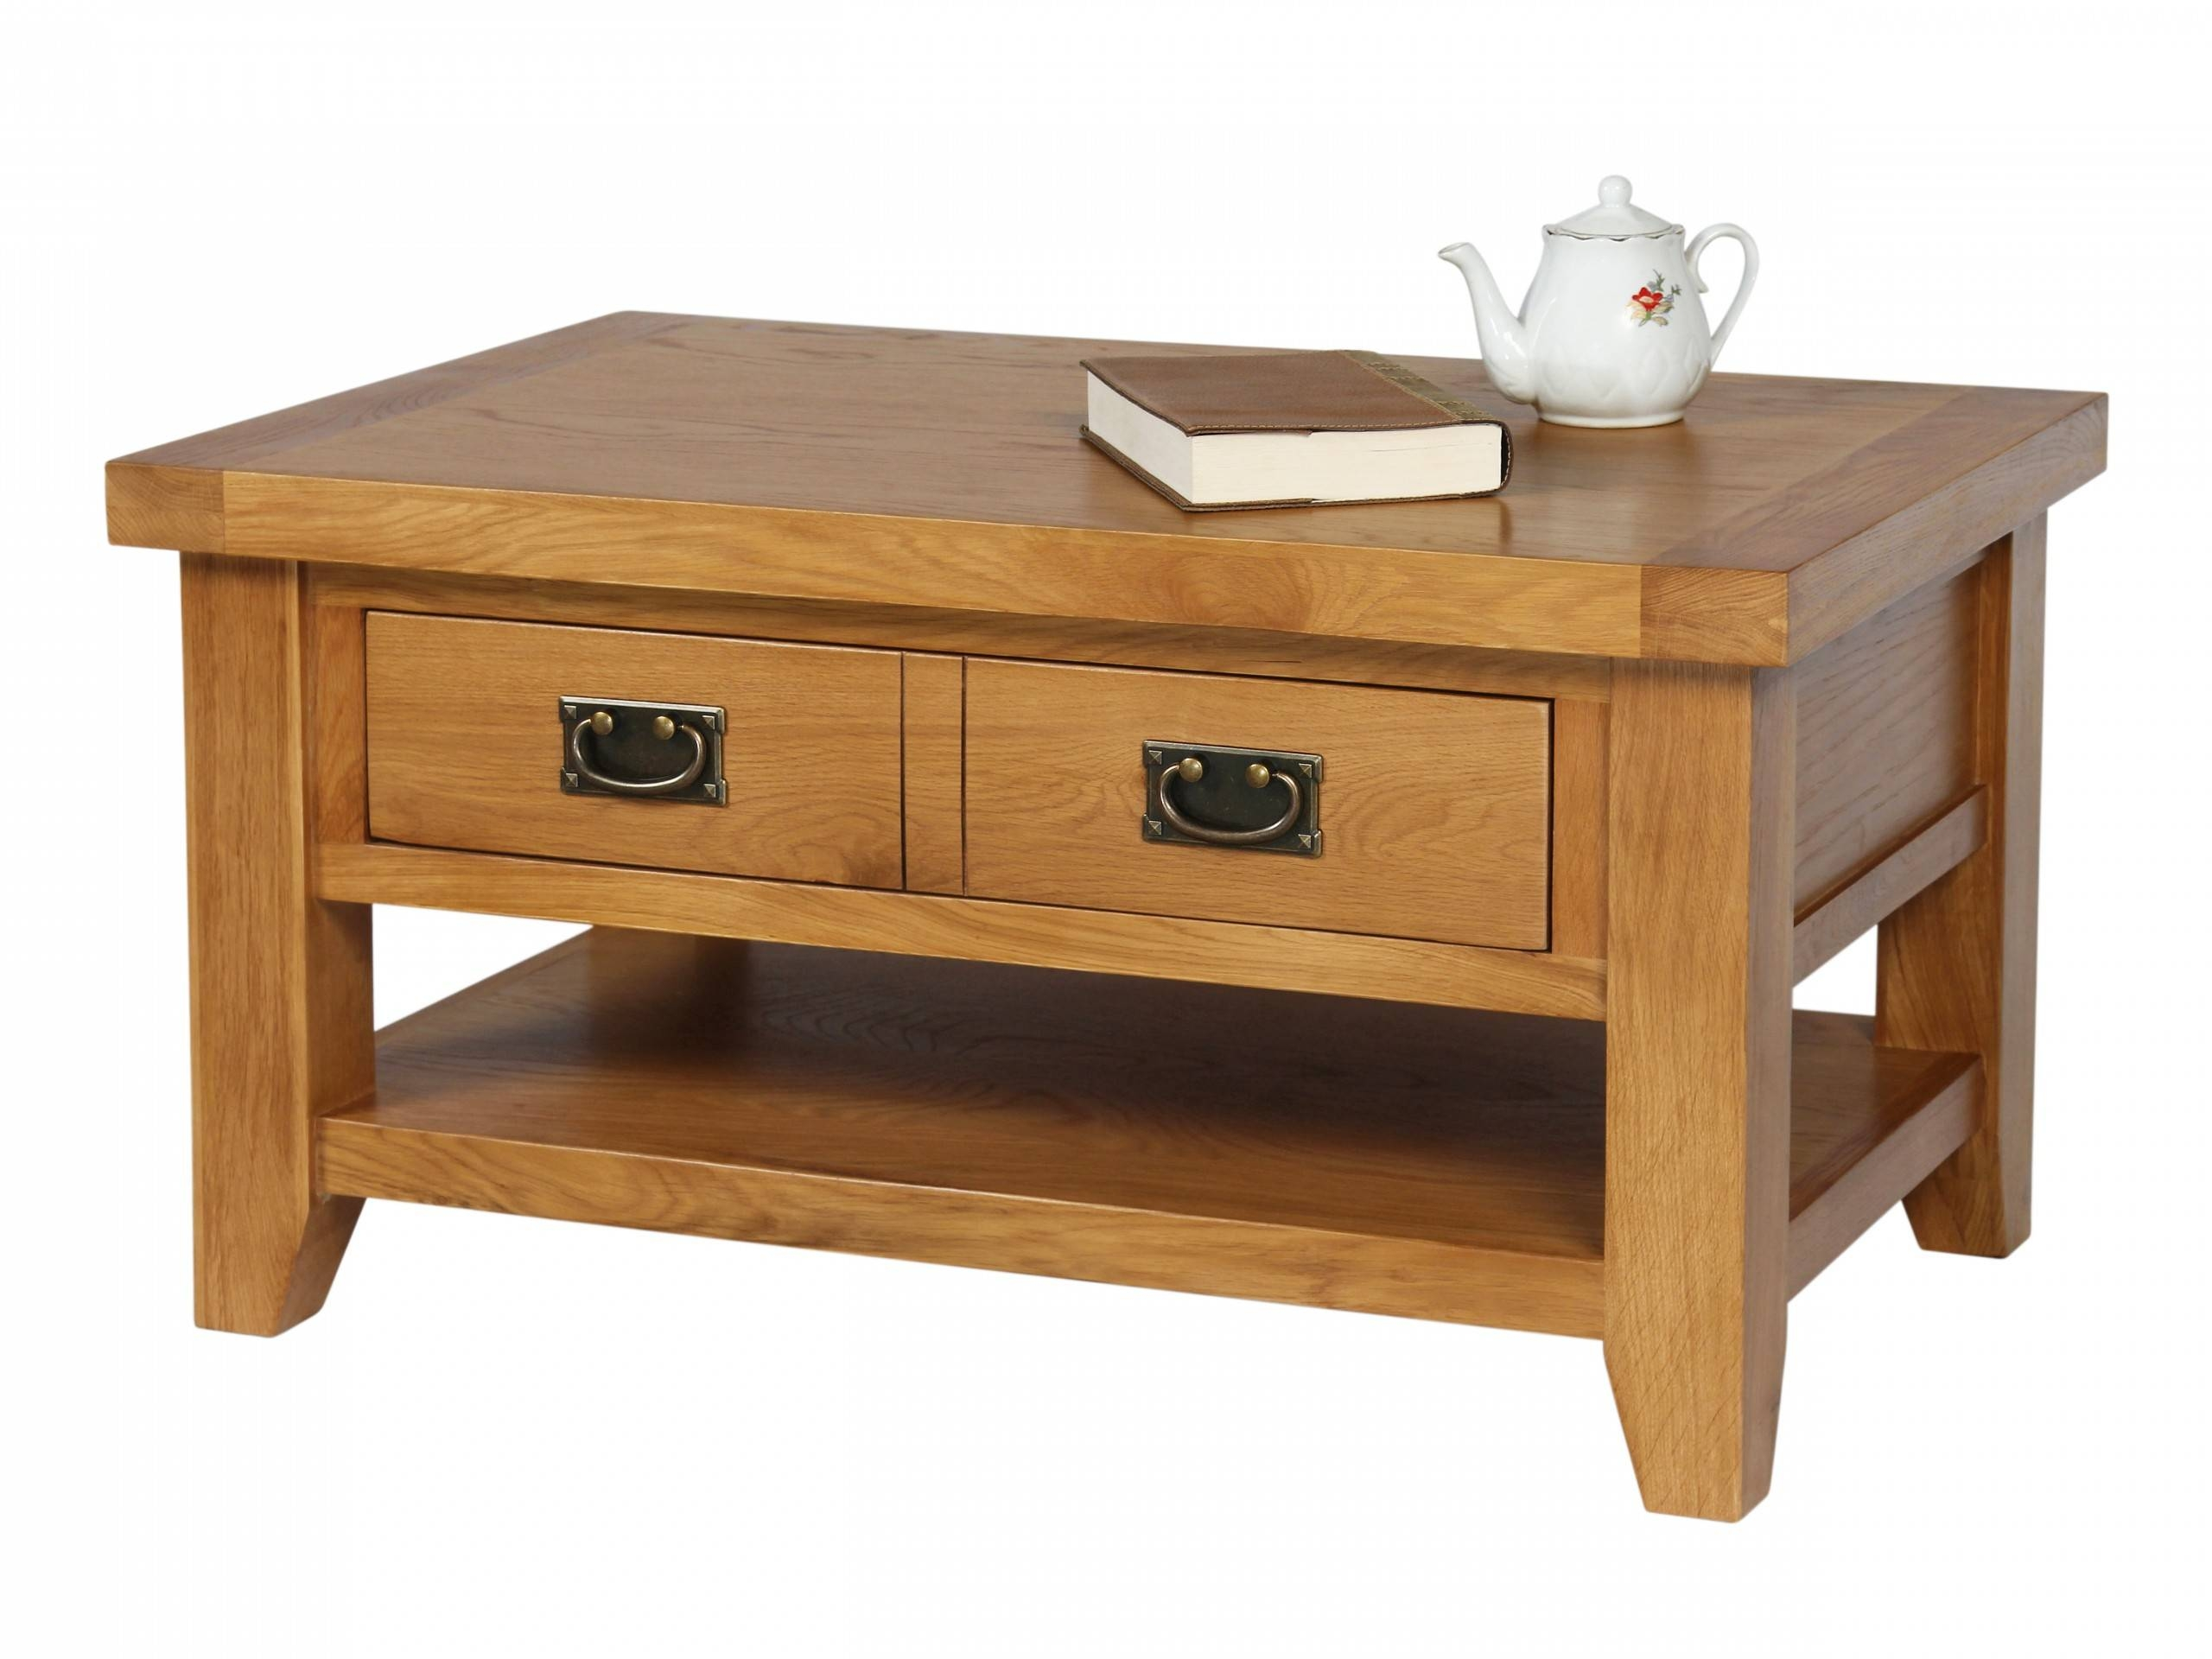 Country Oak Coffee Table With Drawer & Shelf within Oak Coffee Table With Shelf (Image 6 of 15)